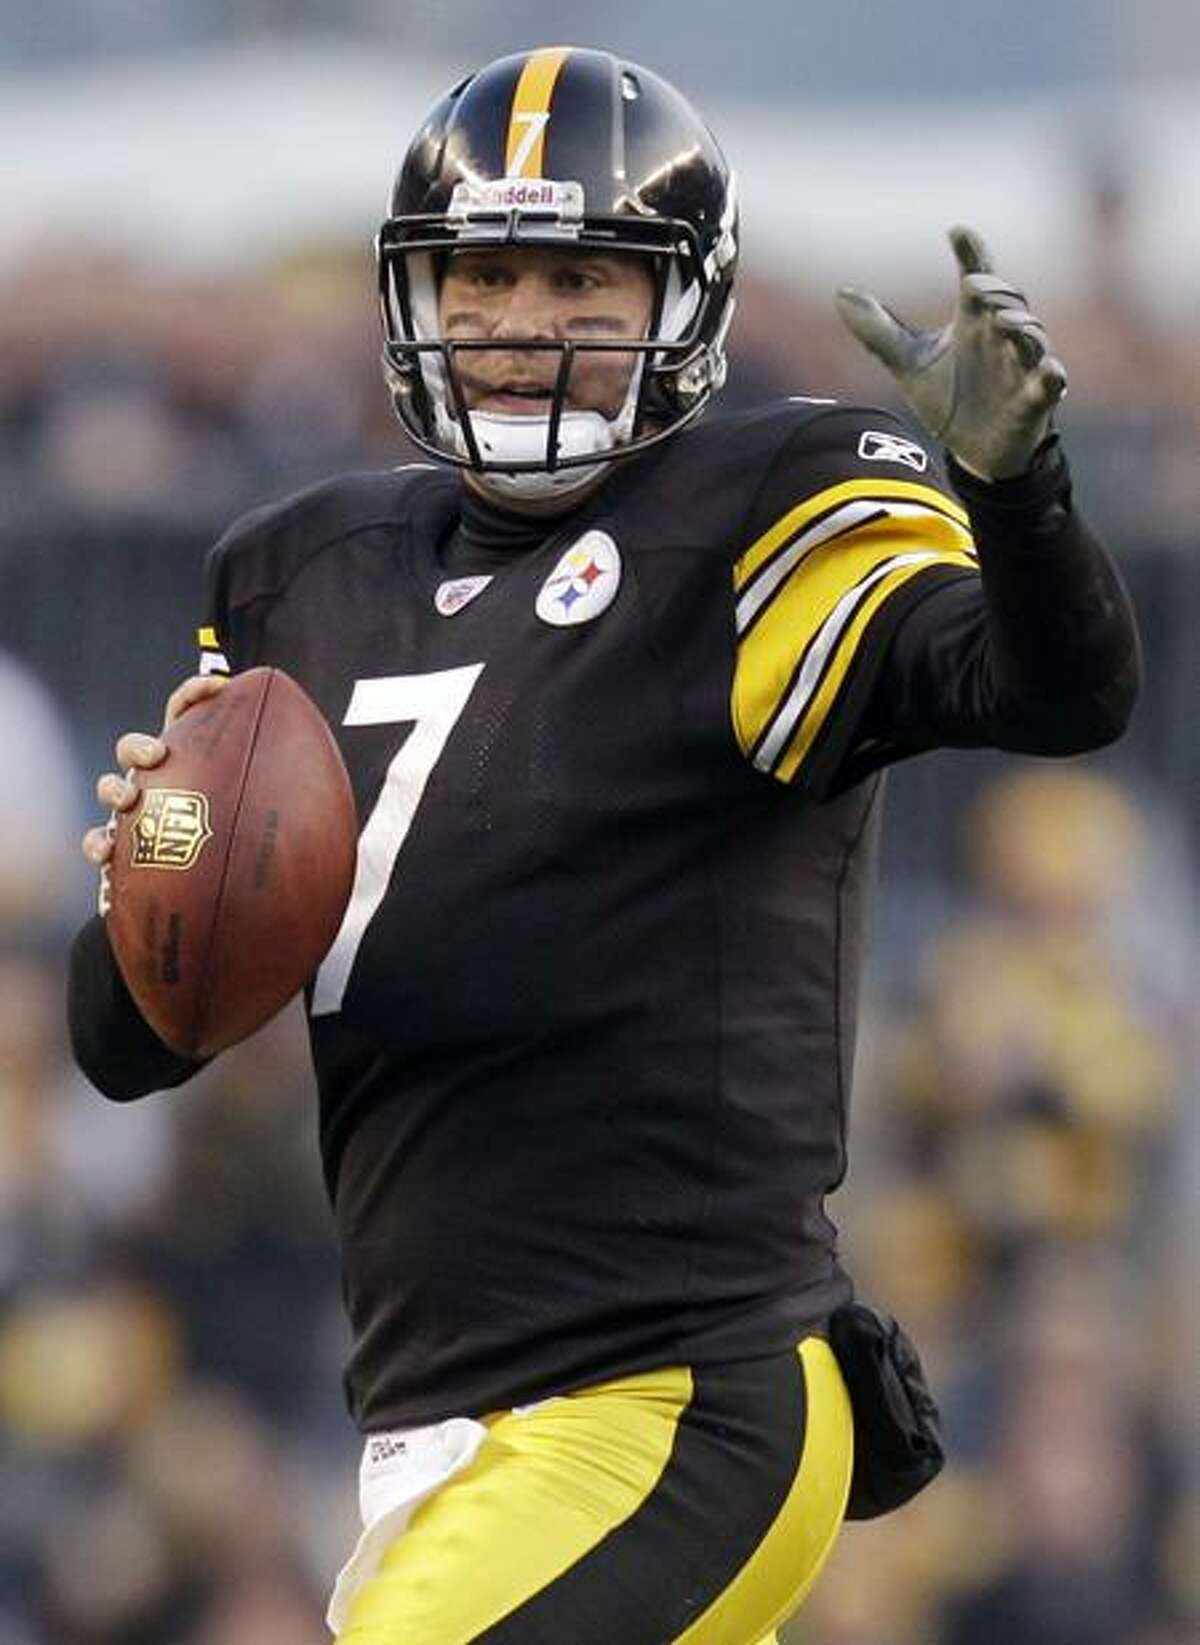 Pittsburgh Steelers quarterback Ben Roethlisberger (7) looks to pass against the New England Patriots during the second quarter of an NFL football game in Pittsburgh, Sunday, Oct. 30, 2011. (AP Photo/Gene J. Puskar)